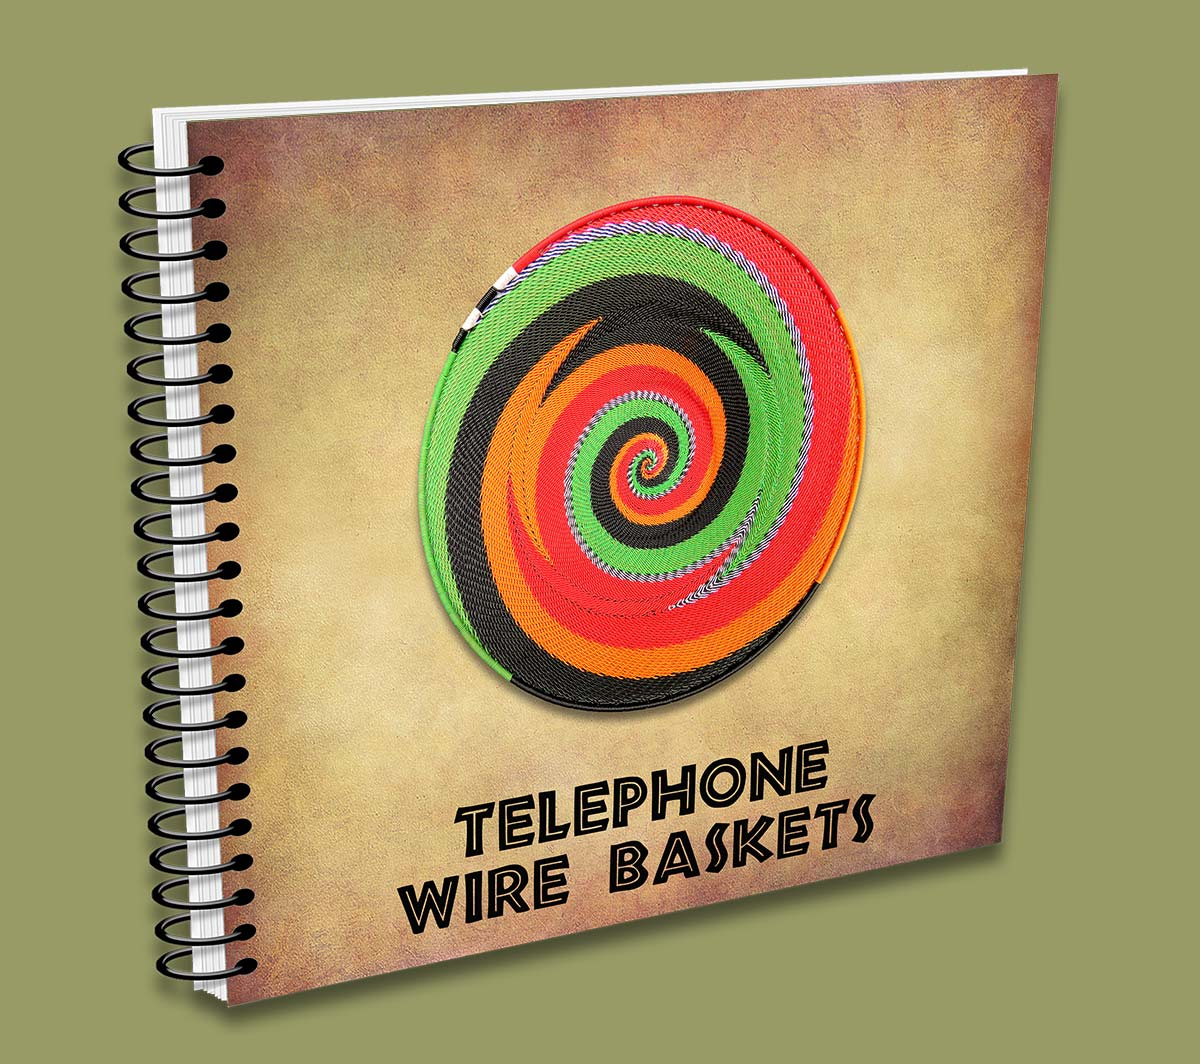 telephone-wire-baskets-catalogue-2